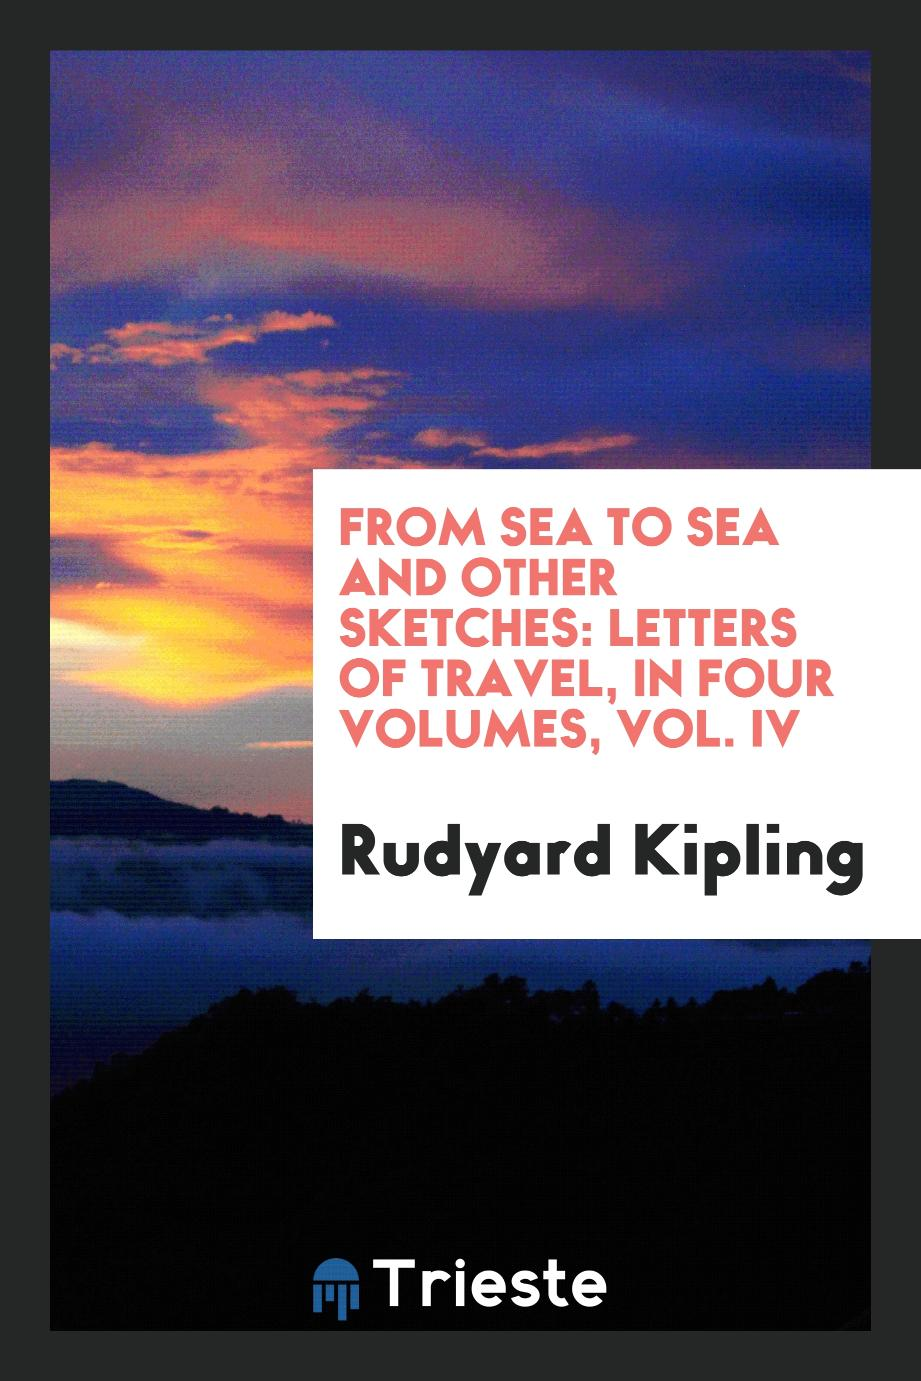 Rudyard Kipling - From sea to sea and other sketches: letters of travel, in four volumes, Vol. IV